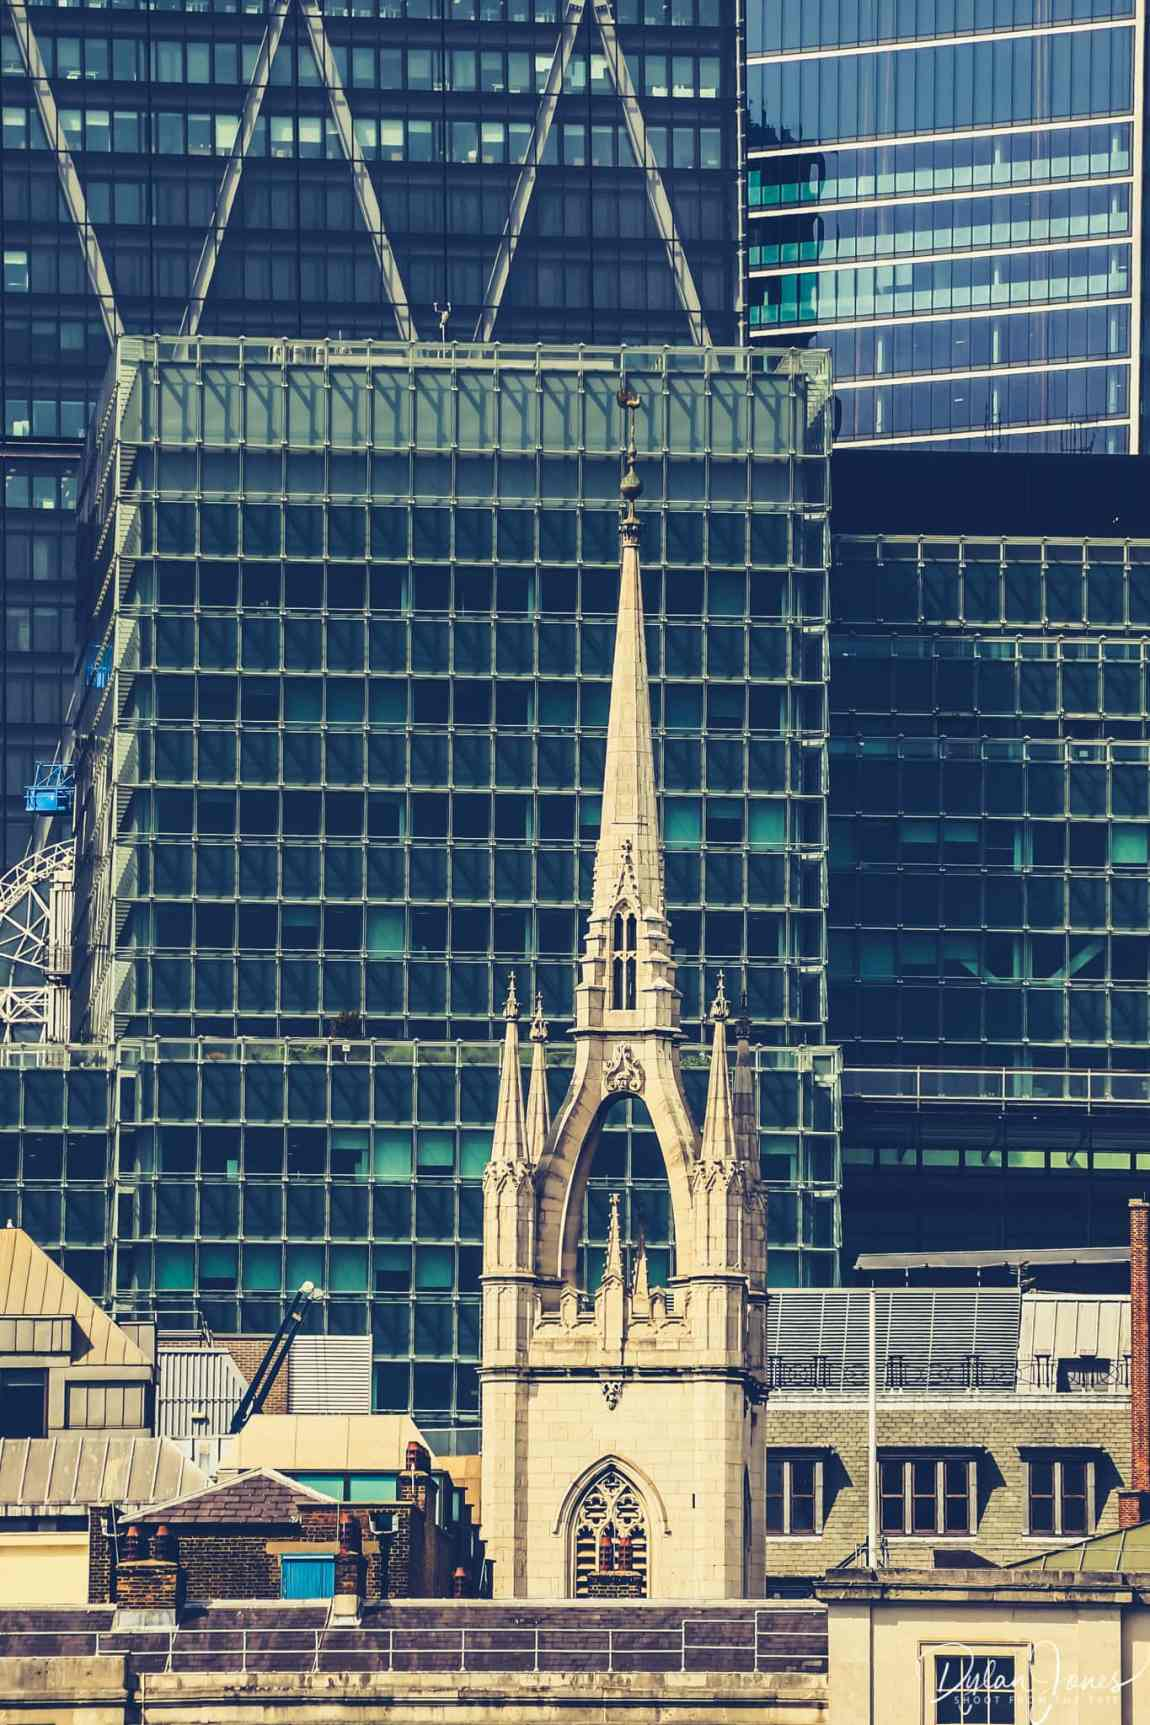 Old meets new in the City of London